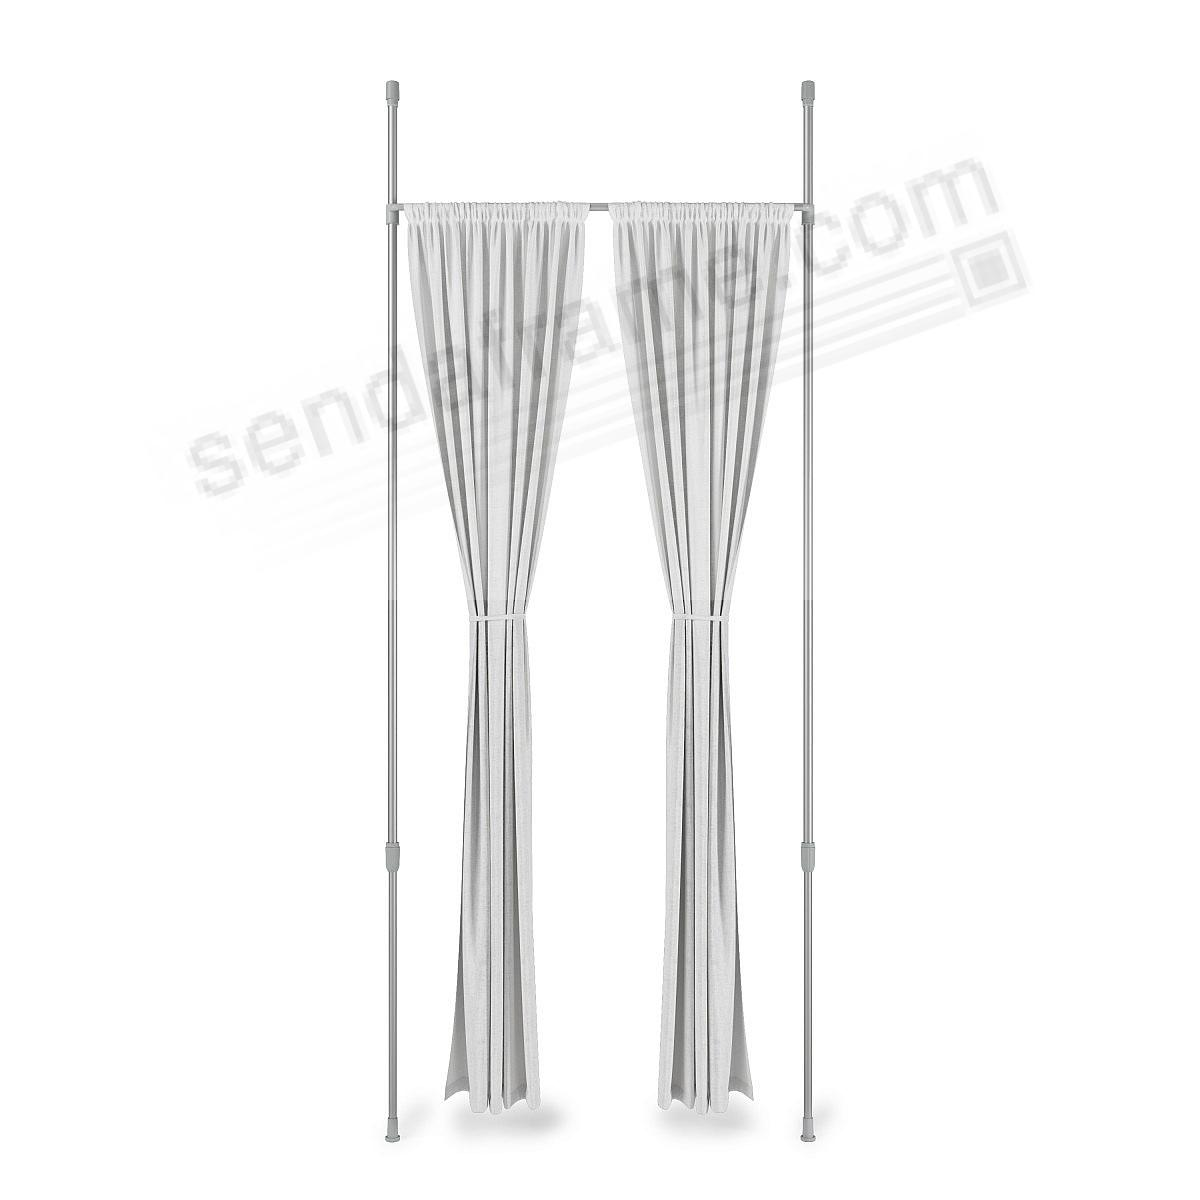 The ANYWHERE 1in 36-66in NICKEL/STEEL SINGLE ROD Drapery Hardware System by Umbra®